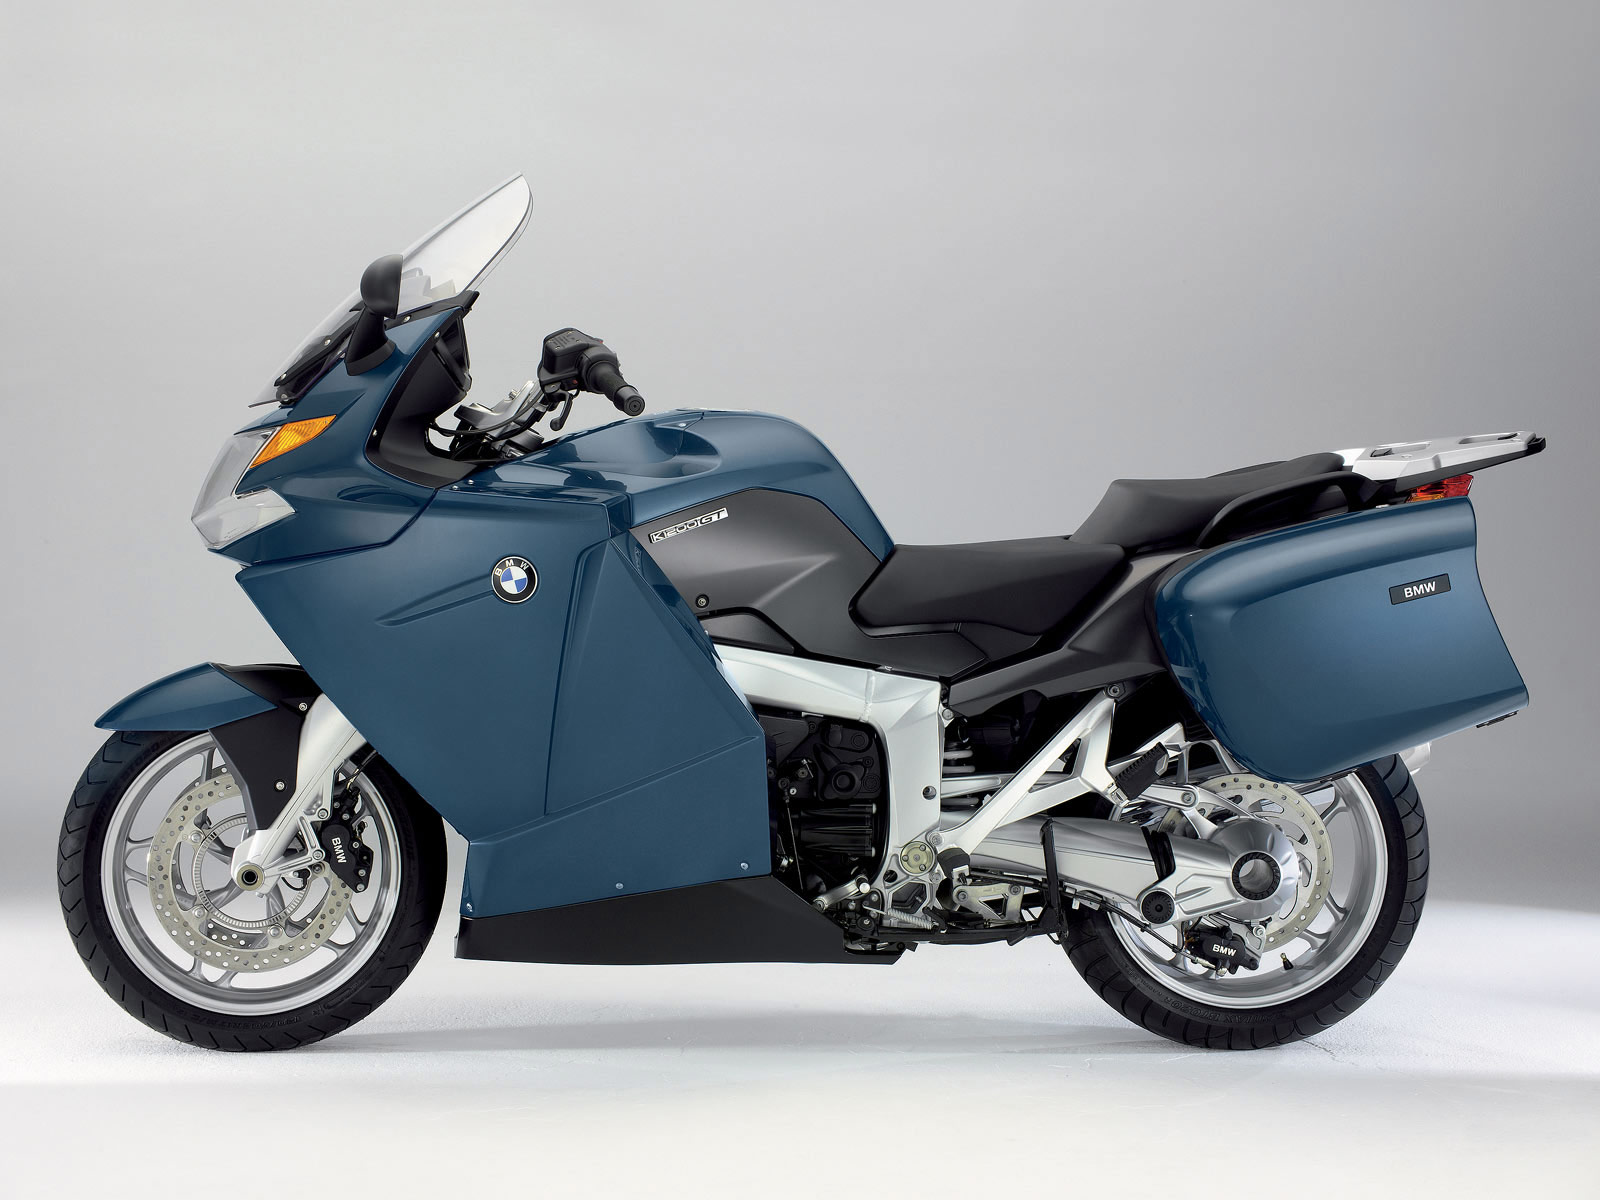 2006 Bmw K 1200 Gt Motorcycle Accident Lawyers Info